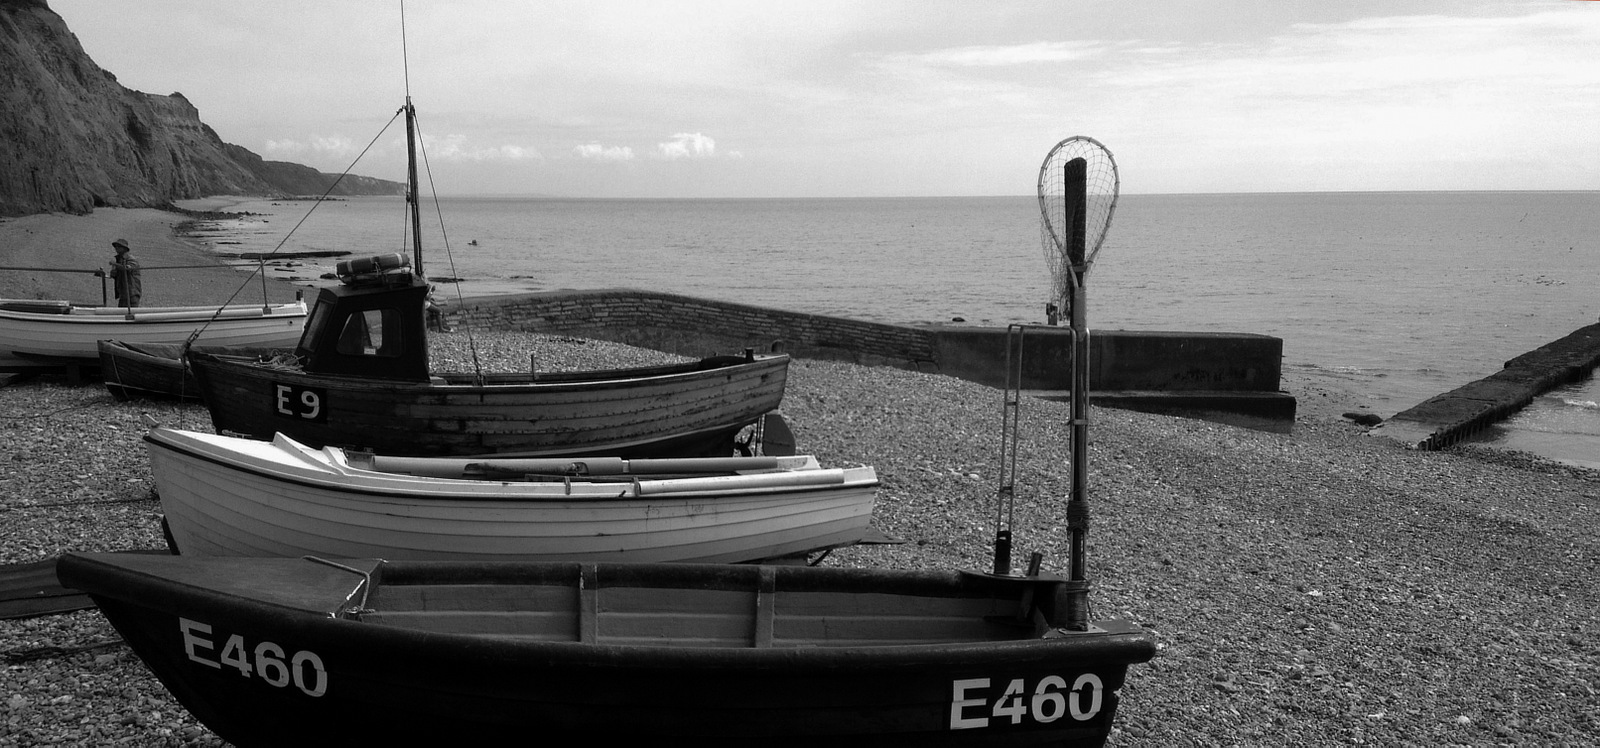 Sidmouth Boats